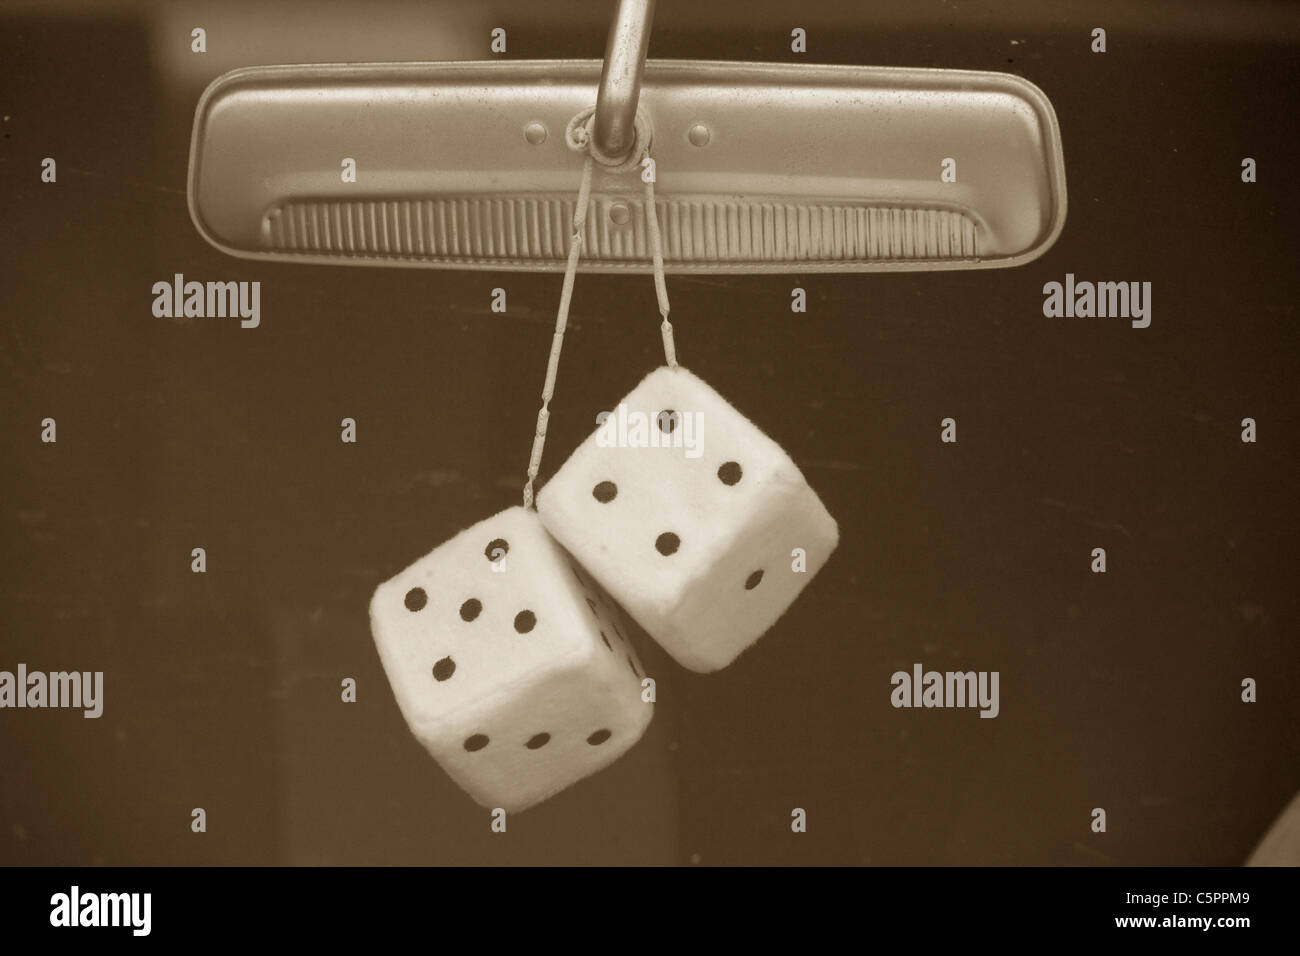 dices and car, concept of lucy - Stock Image